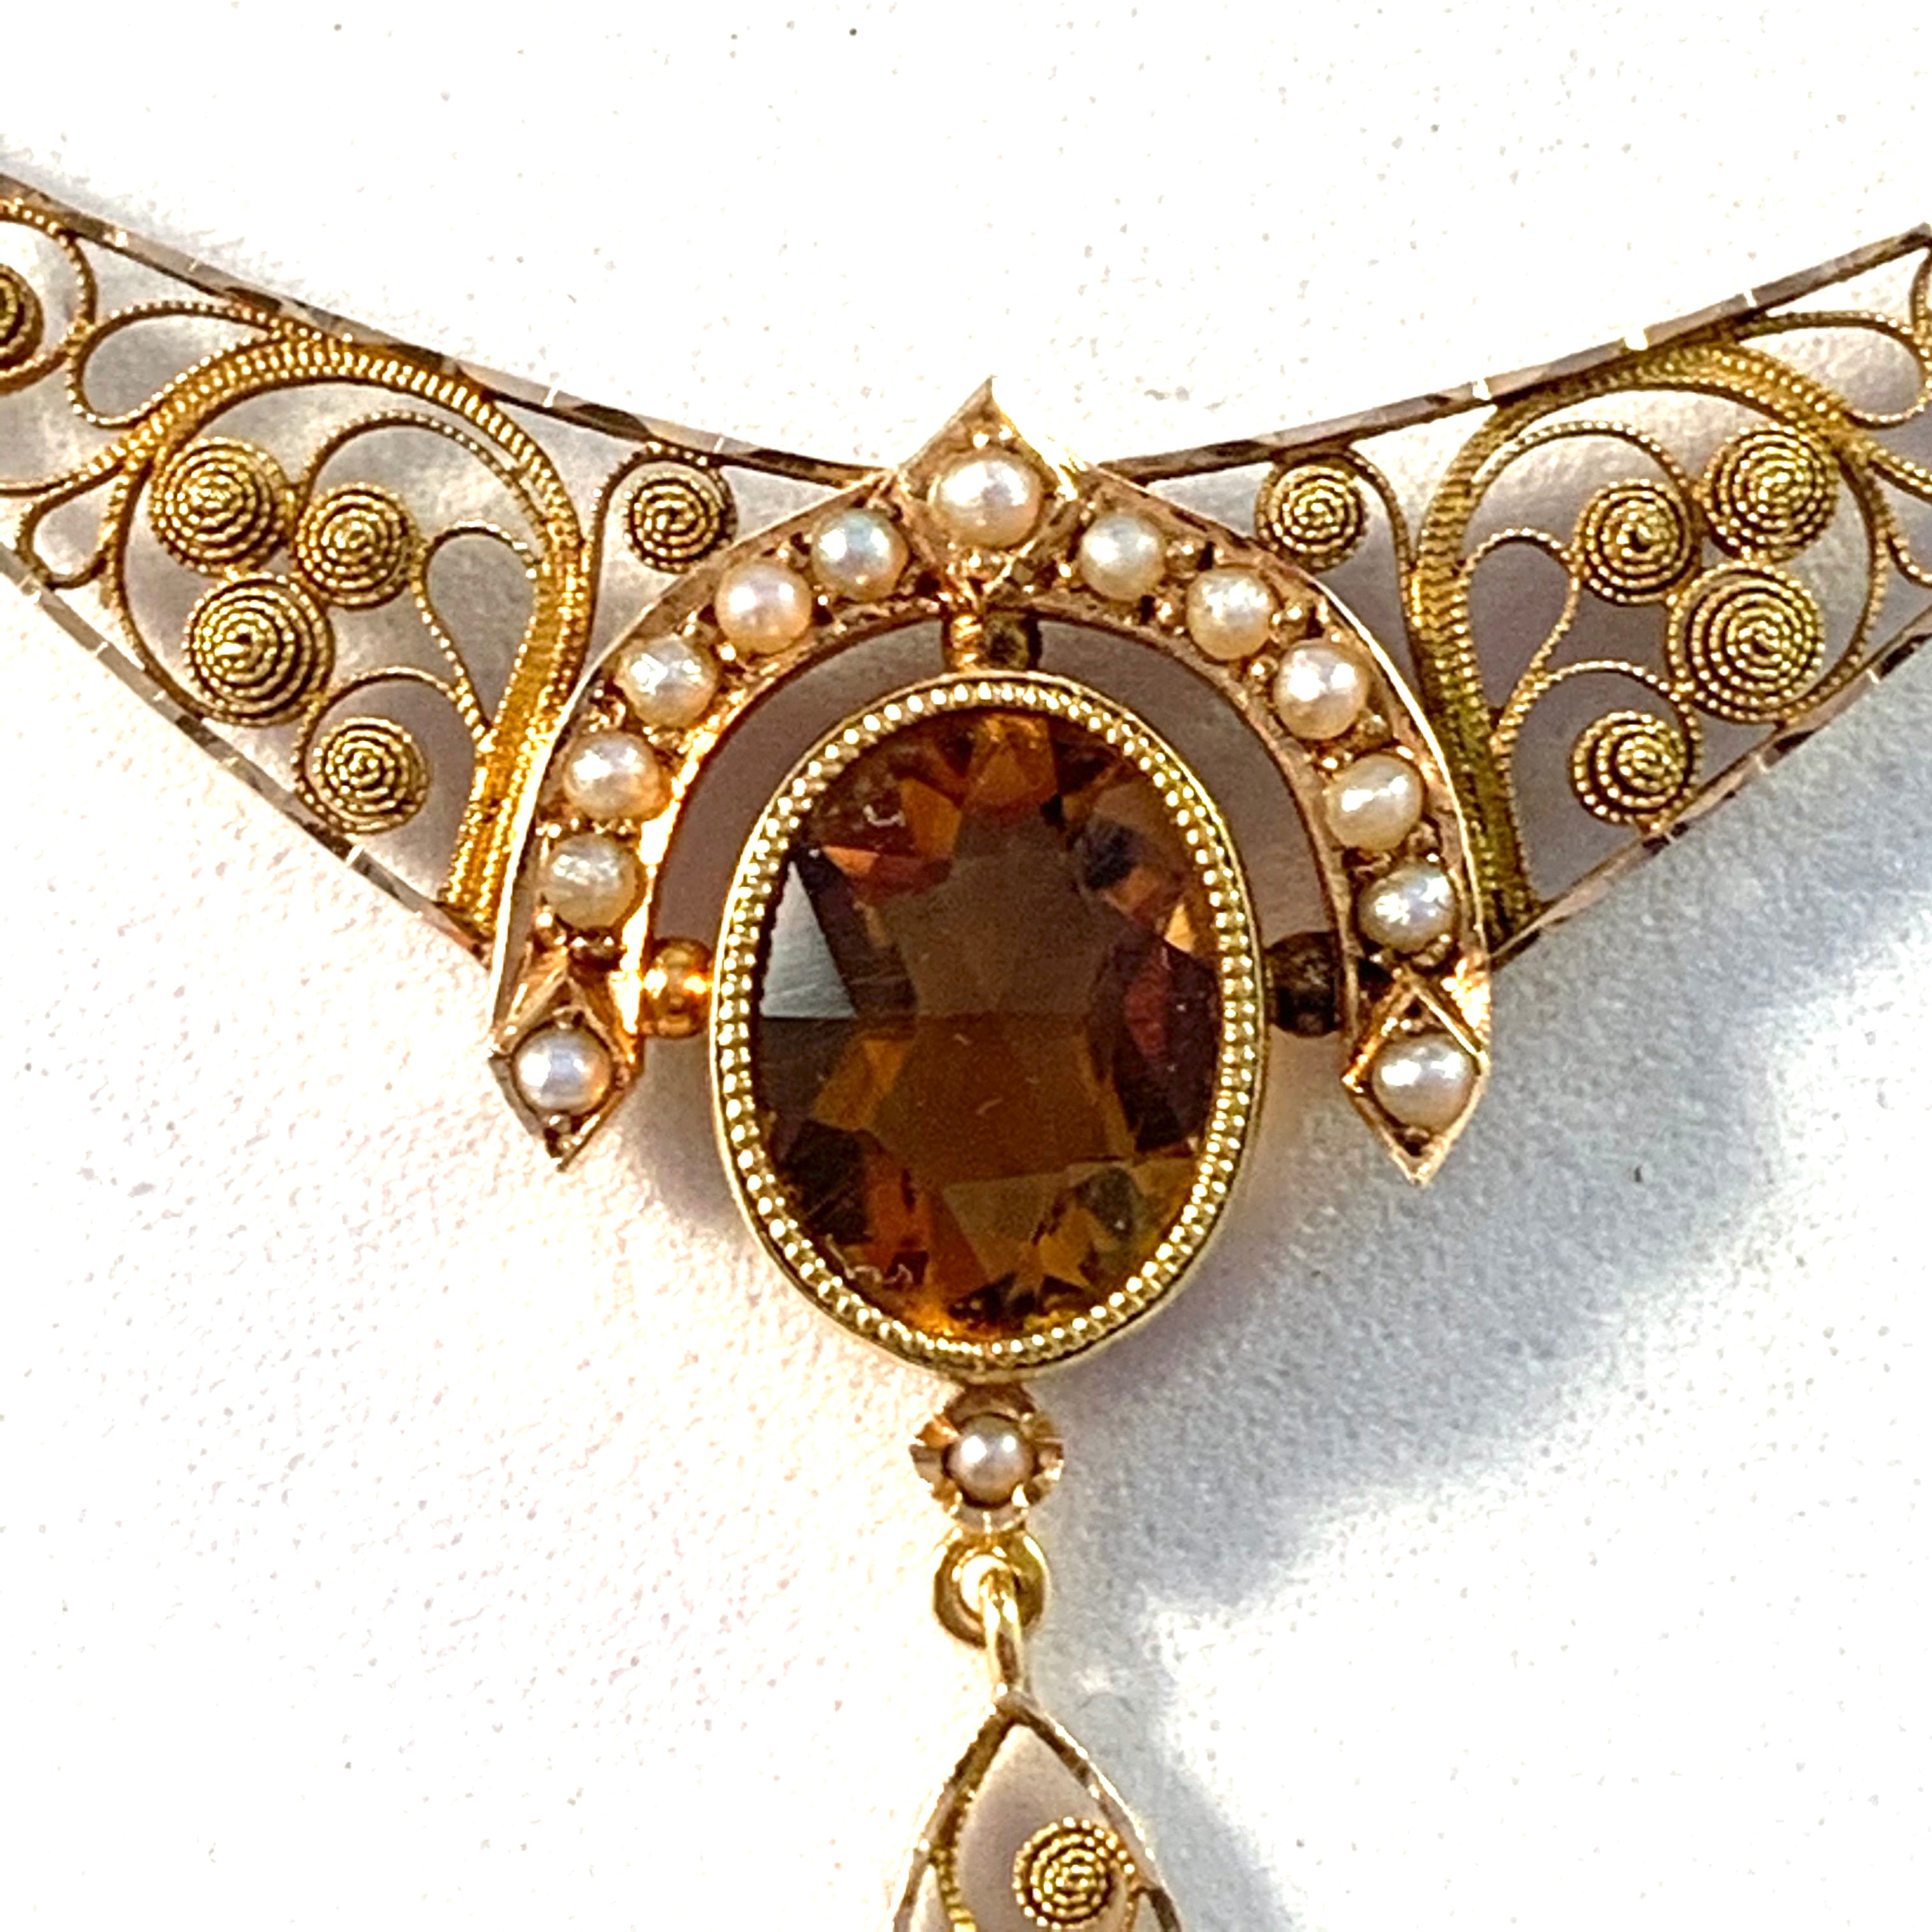 Bernhard Hertz, Sweden 1910 Edwardian 18k Gold Citrine Necklace.